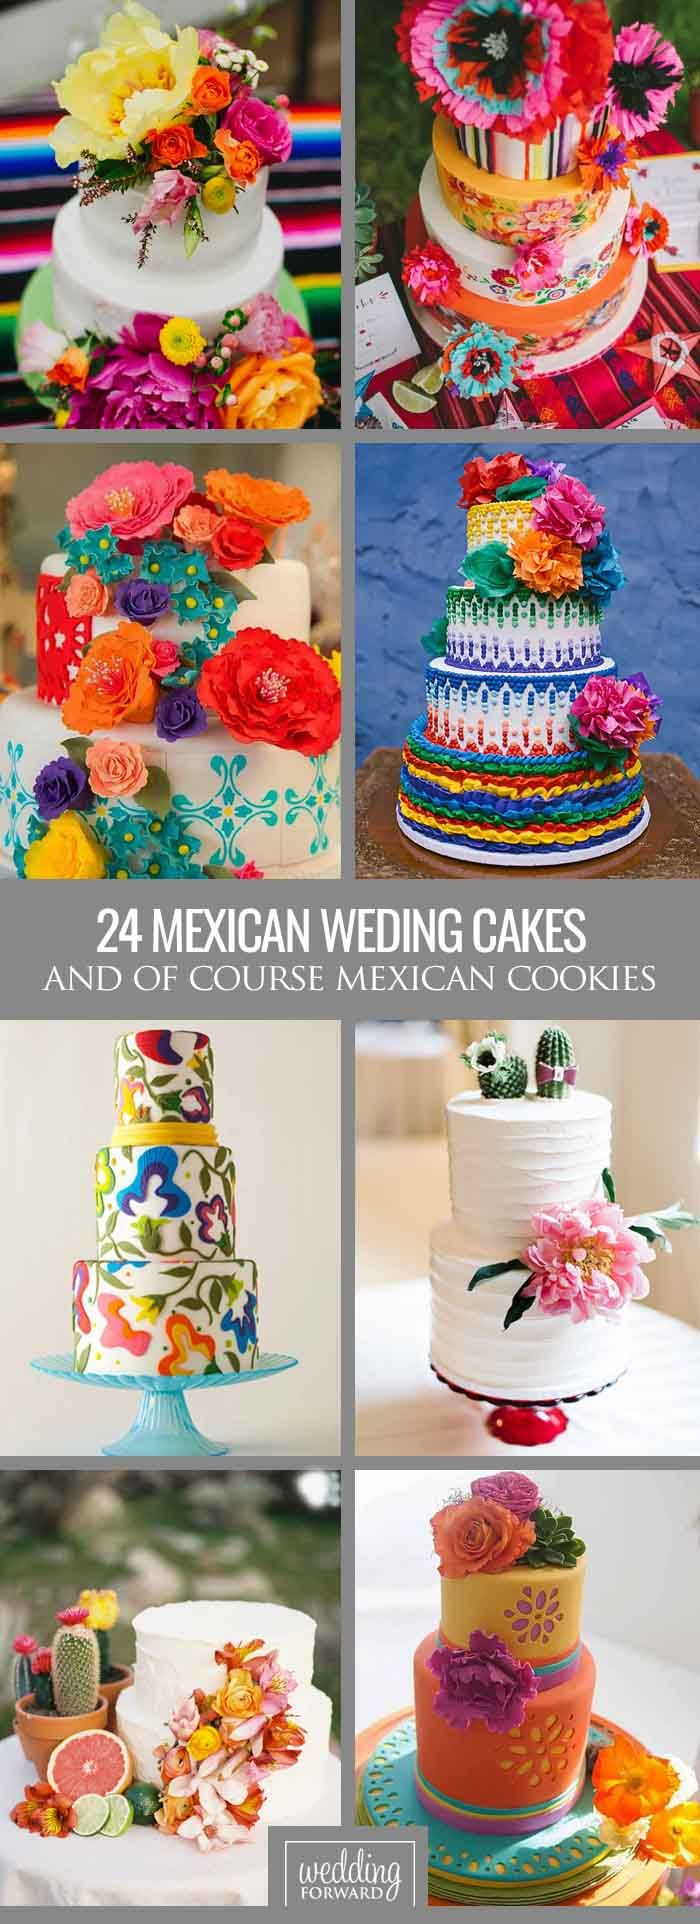 24 Mexican Wedding Cake Ideas ❤ Mexican wedding cake could be very funny and creative. See more: http://www.weddingforward.com/mexican-wedding-cake-ideas/ #weddings #cake